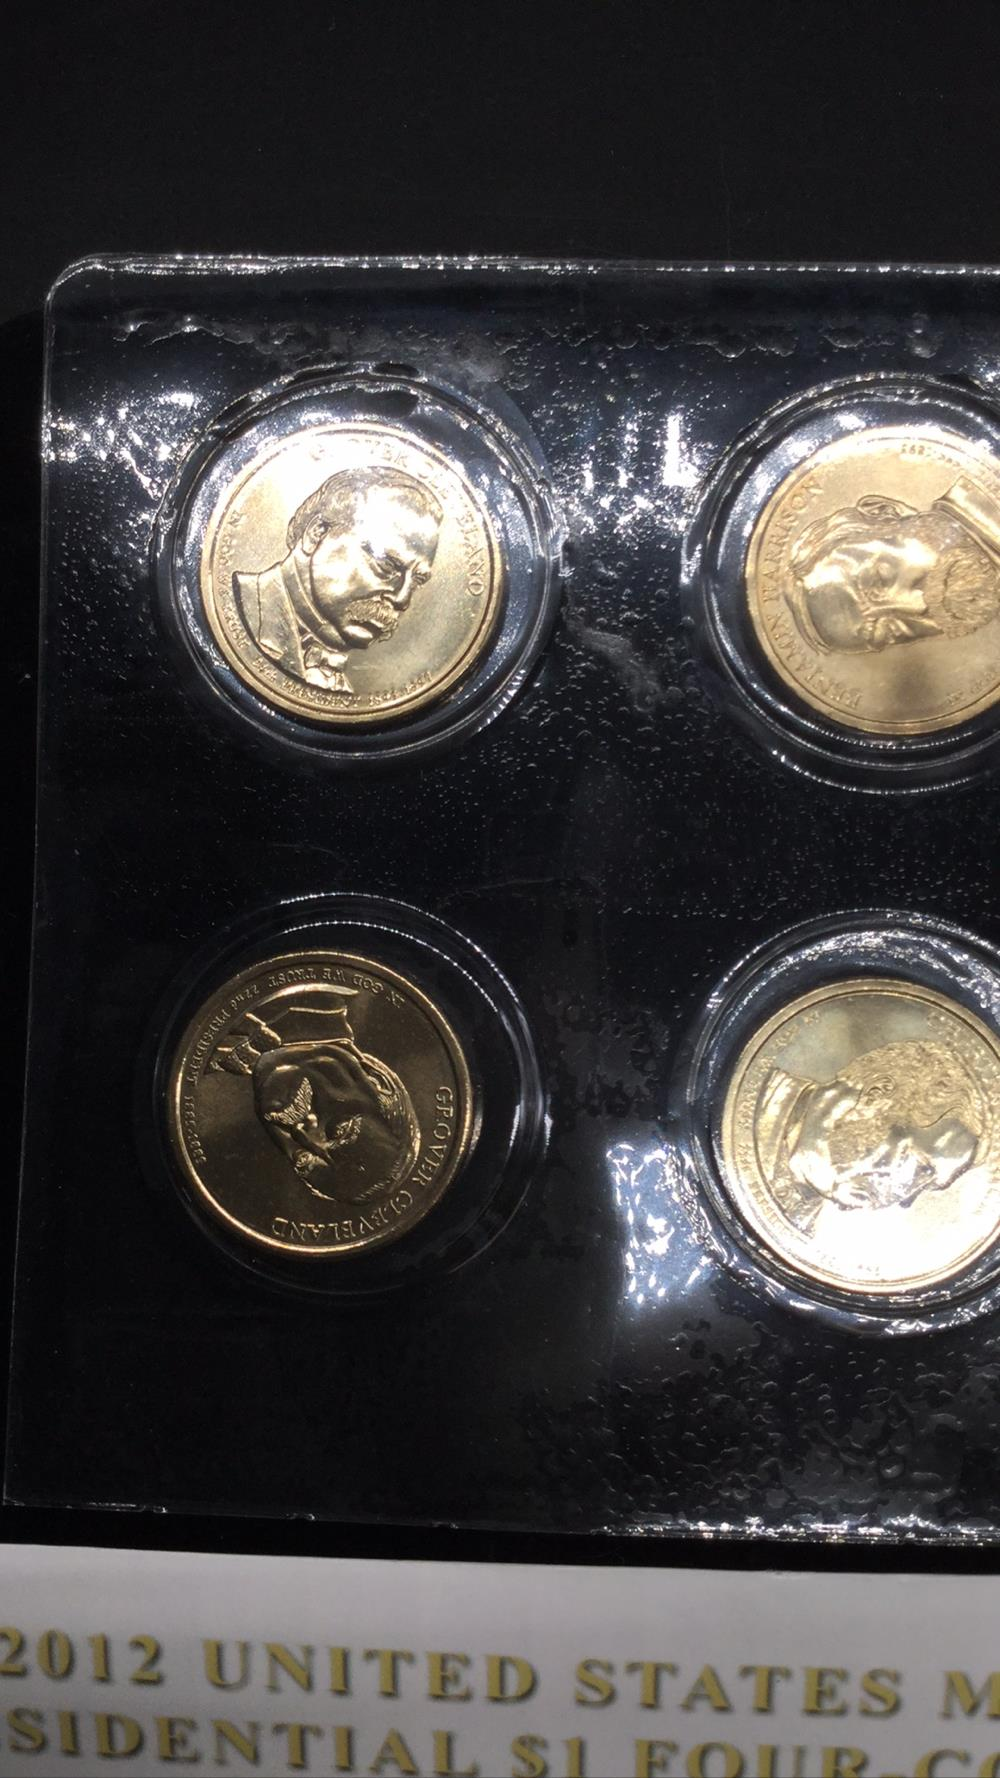 2012 United States mint presidential coin set